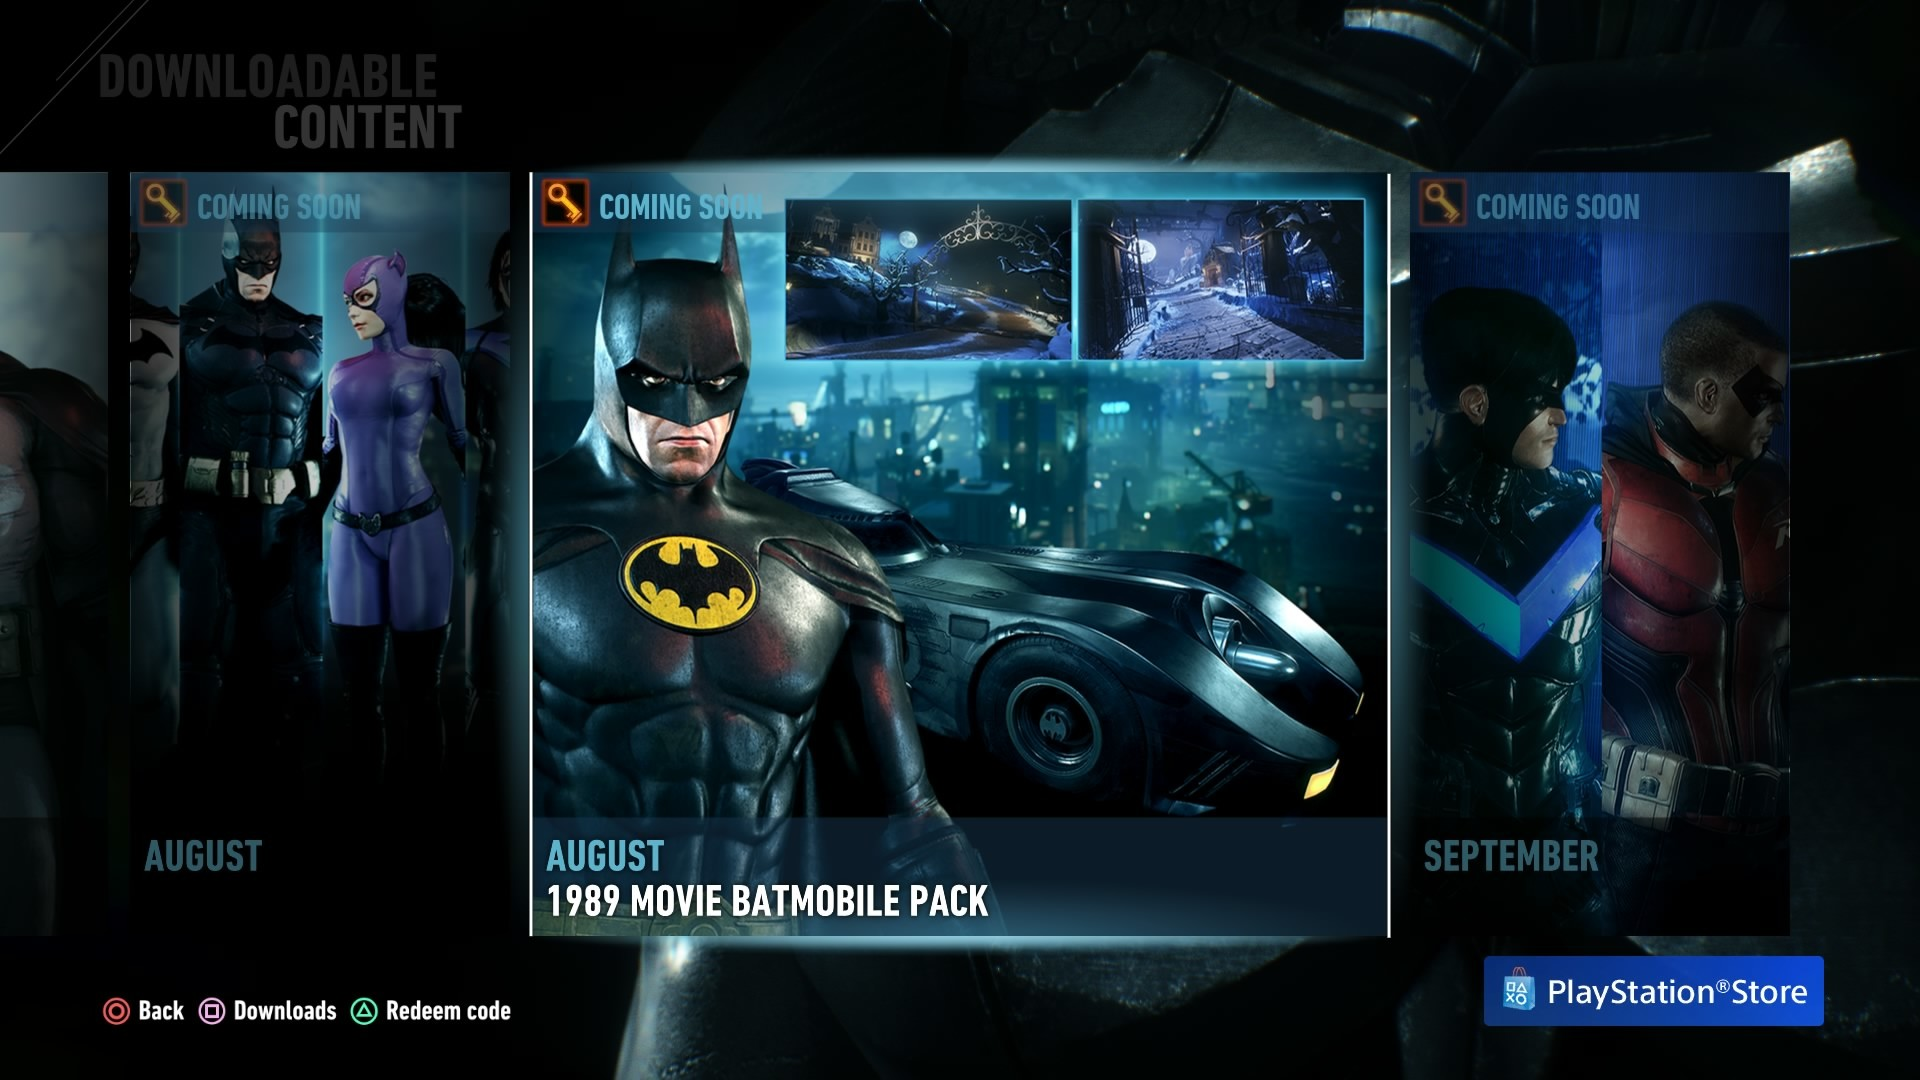 1920x1080 Batman Arkham Knight DLC 1989 Movie